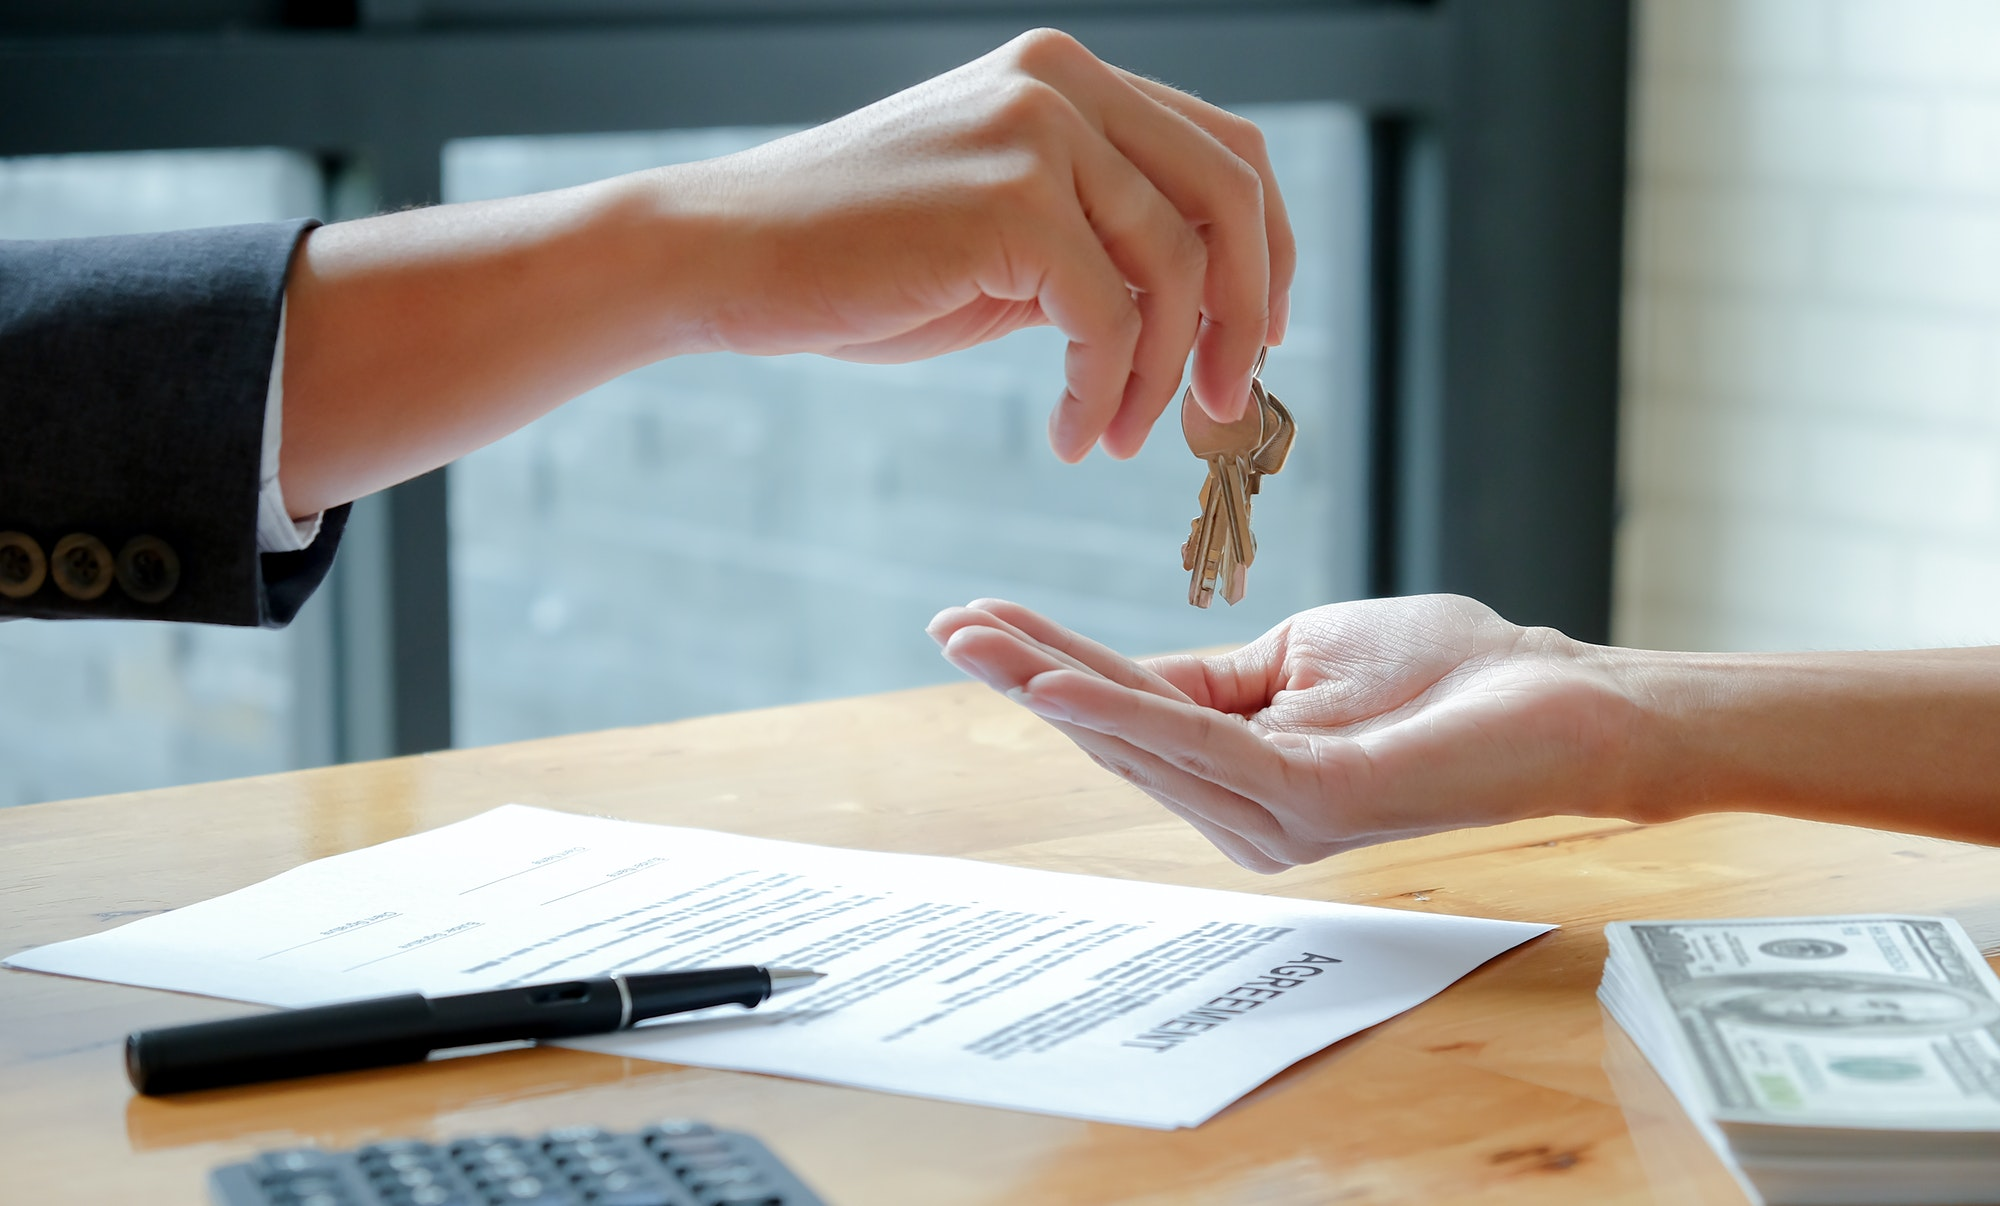 The house broker sends the keys to the customer after signing the contract to buy the house.